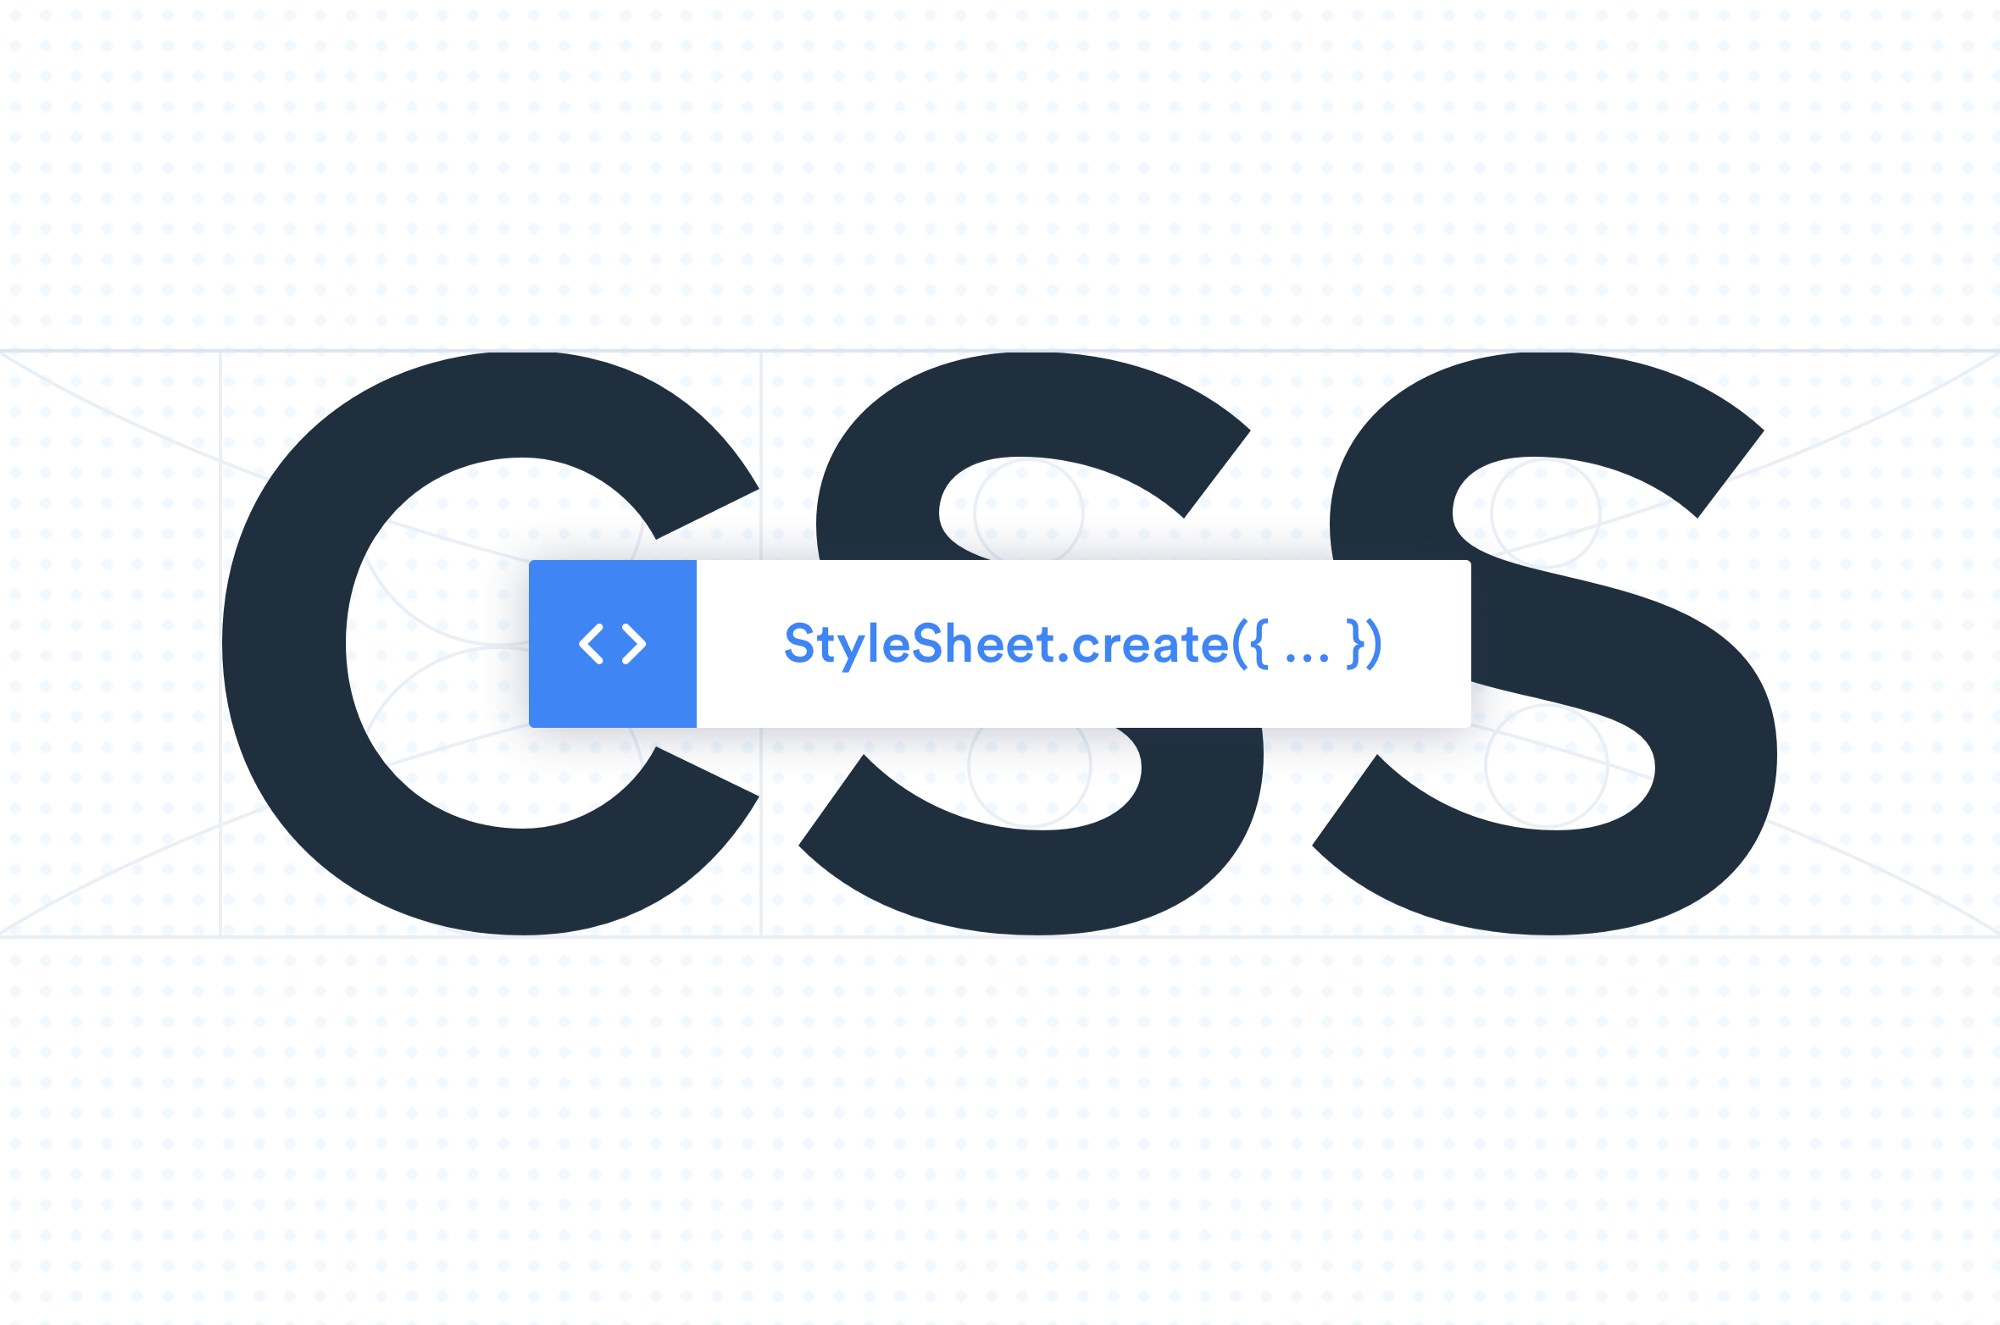 CSS in JavaScript: The future of component-based styling